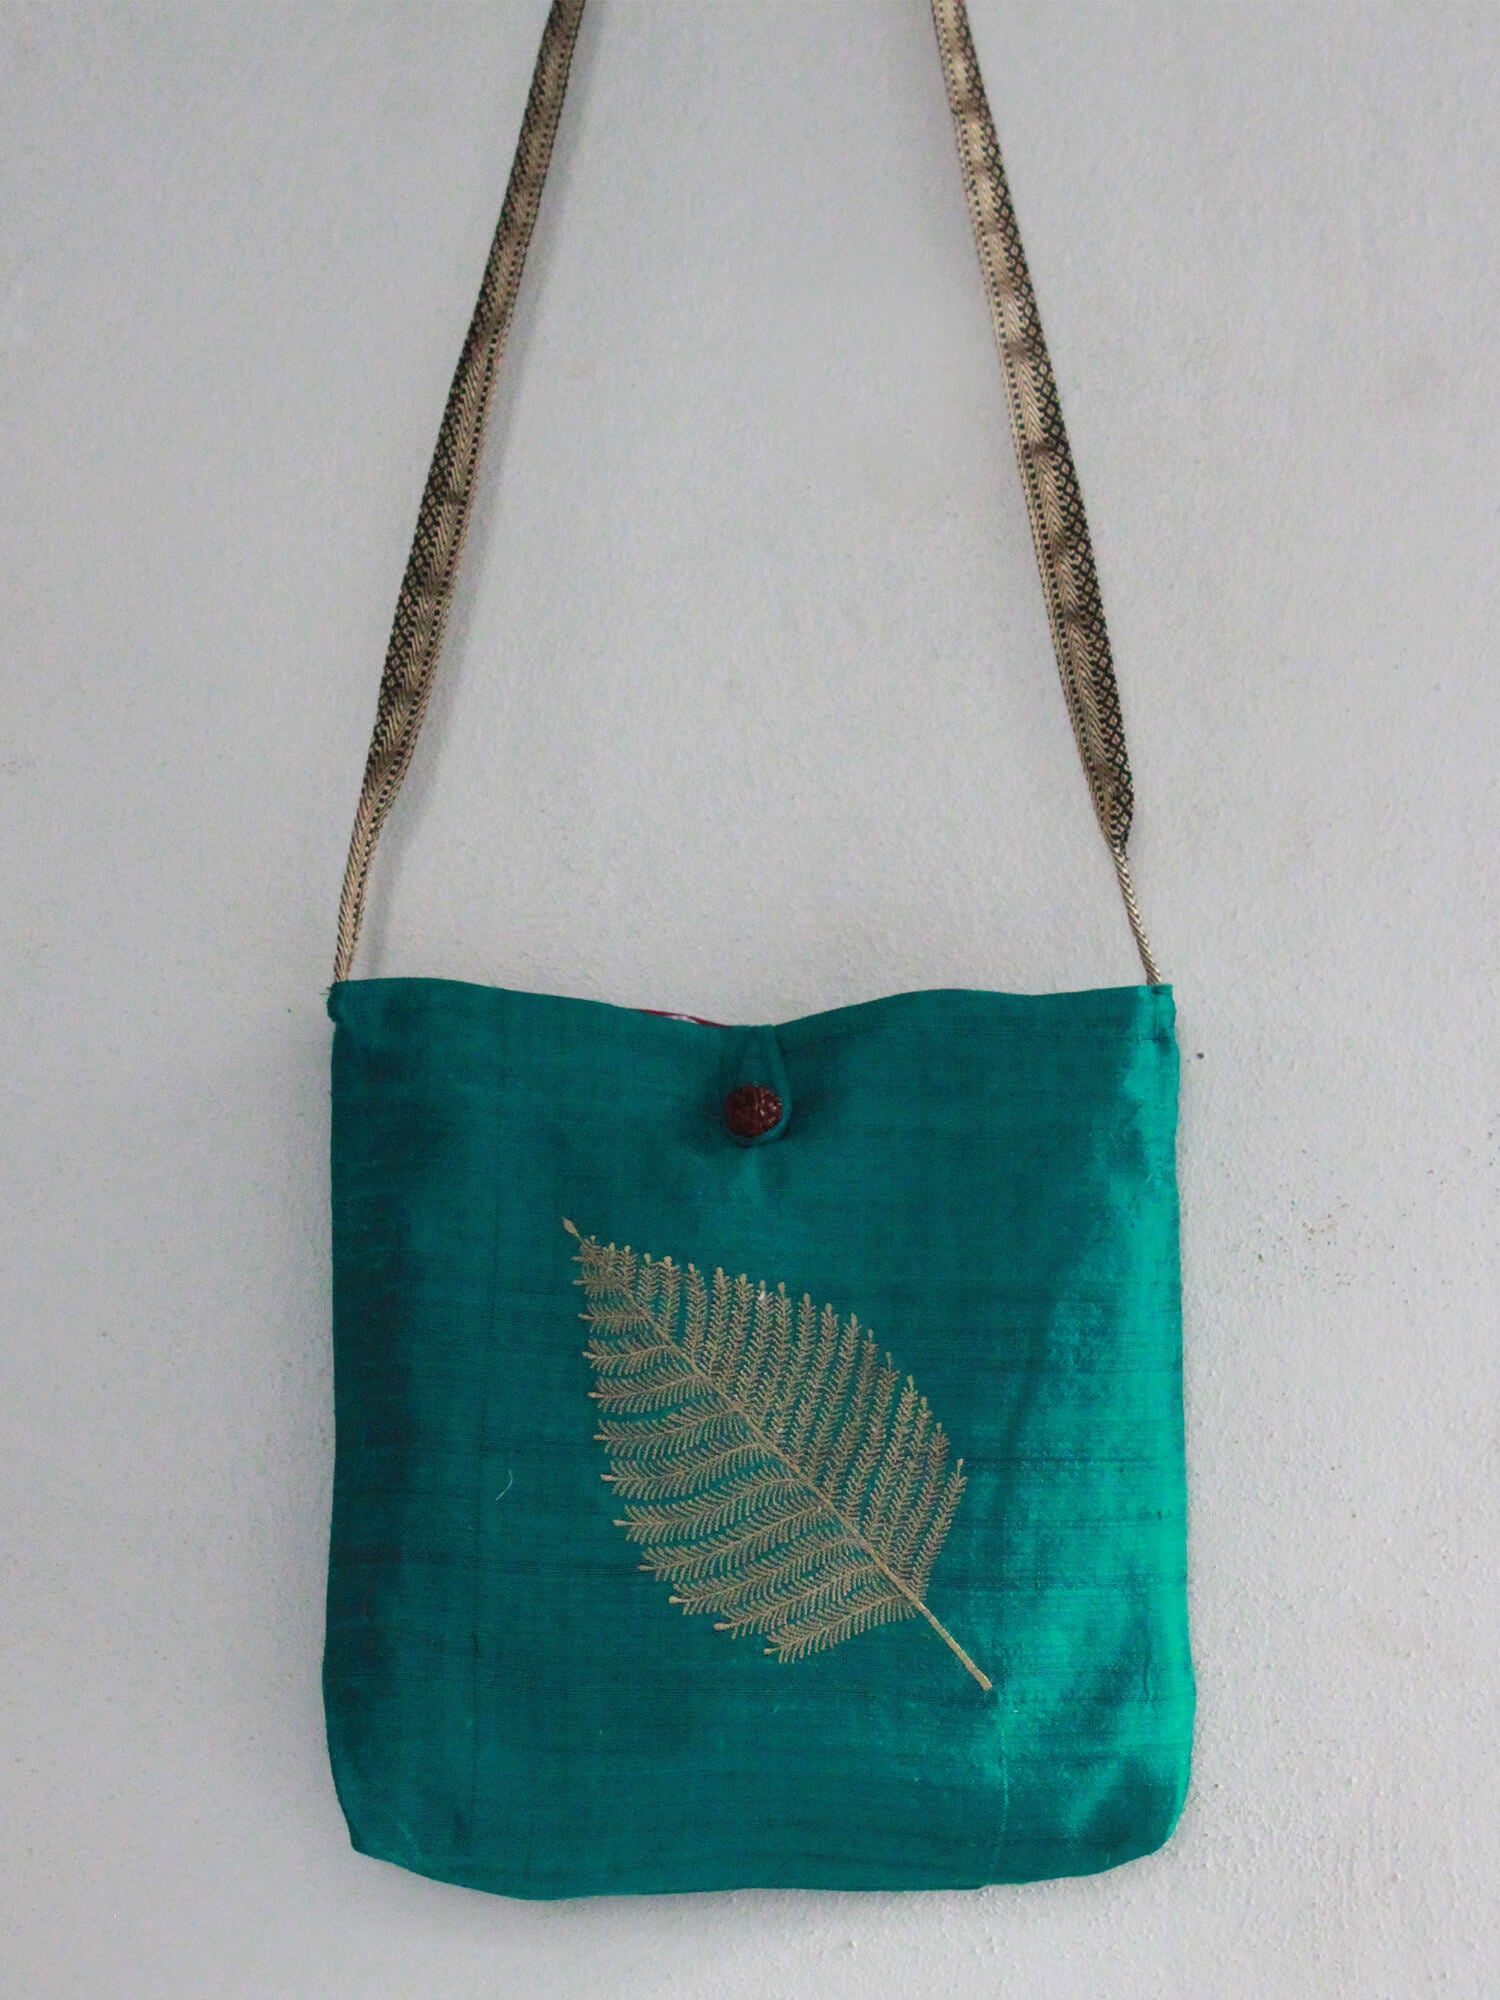 SLING TOTE BAG | TEAL | FERN LEAF